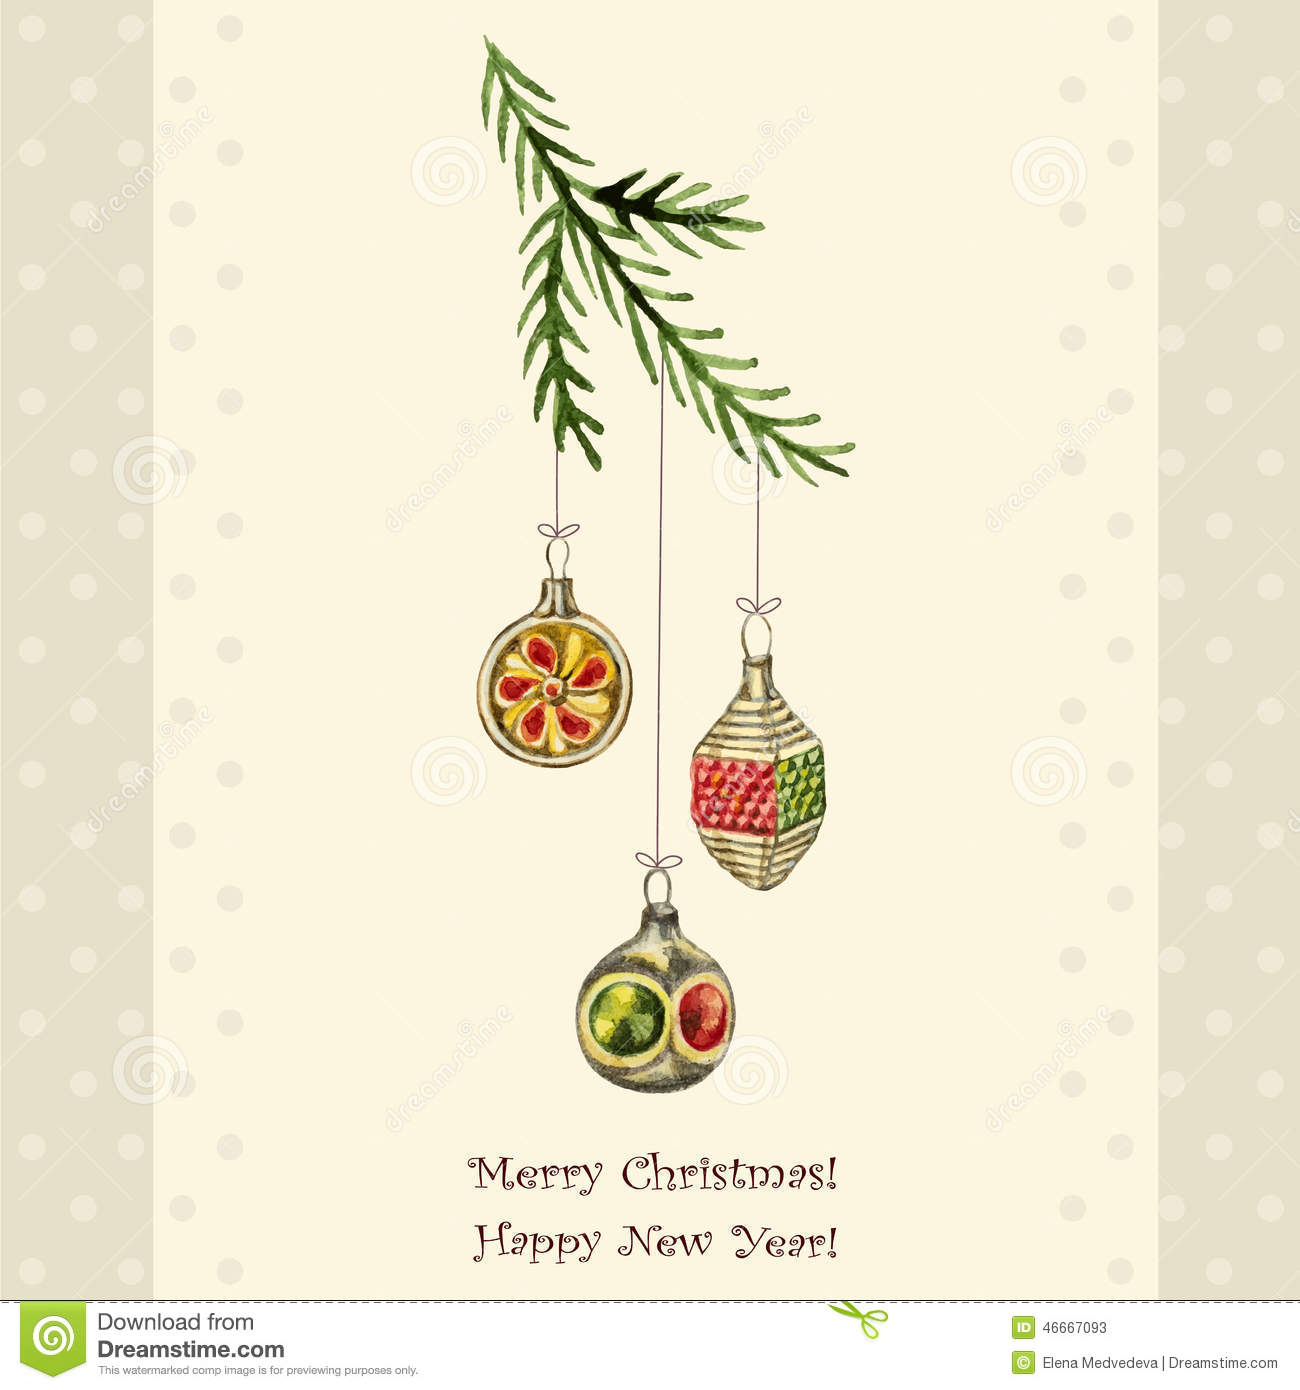 Christmas Watercolor Retro Postcard Christmas Decorations Hanging From The Branches Of Spruce